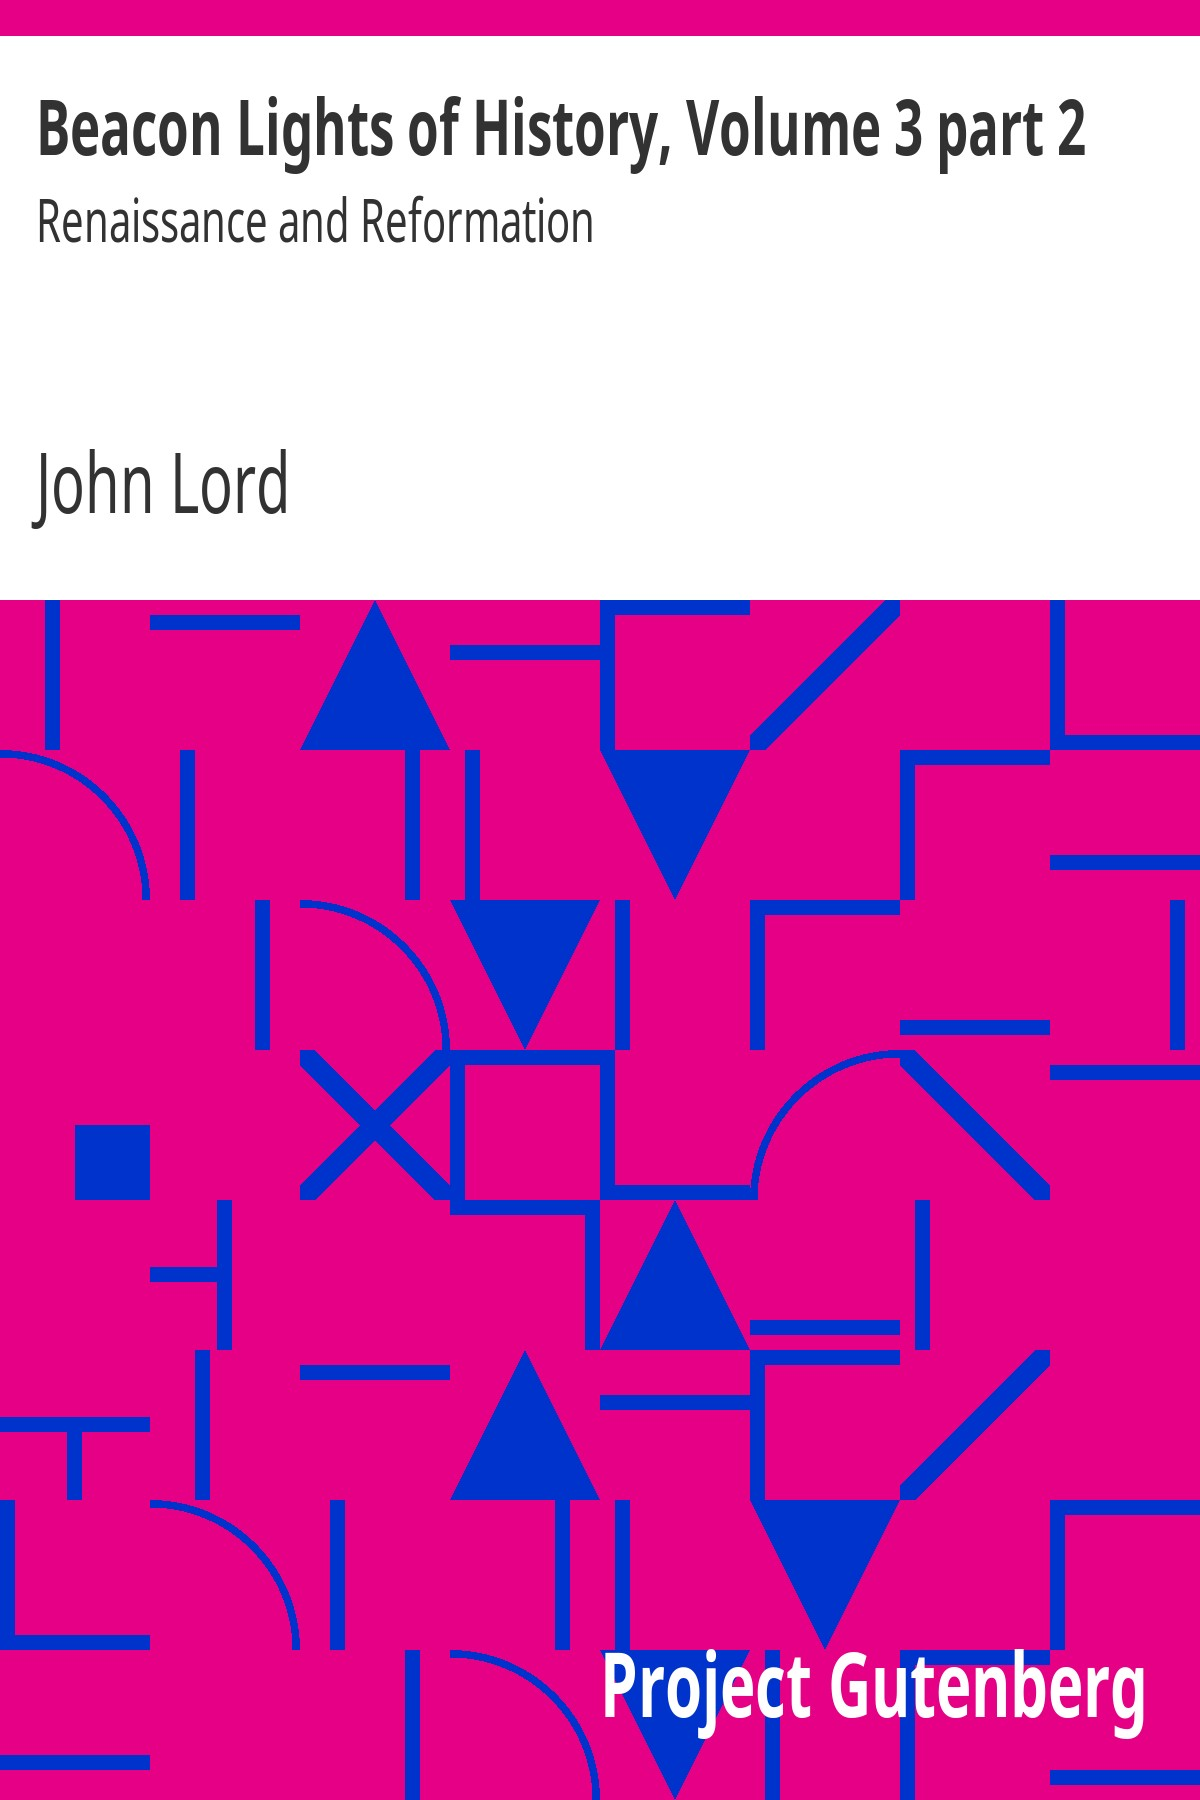 John Lord Beacon Lights of History, Volume 3 part 2: Renaissance and Reformation